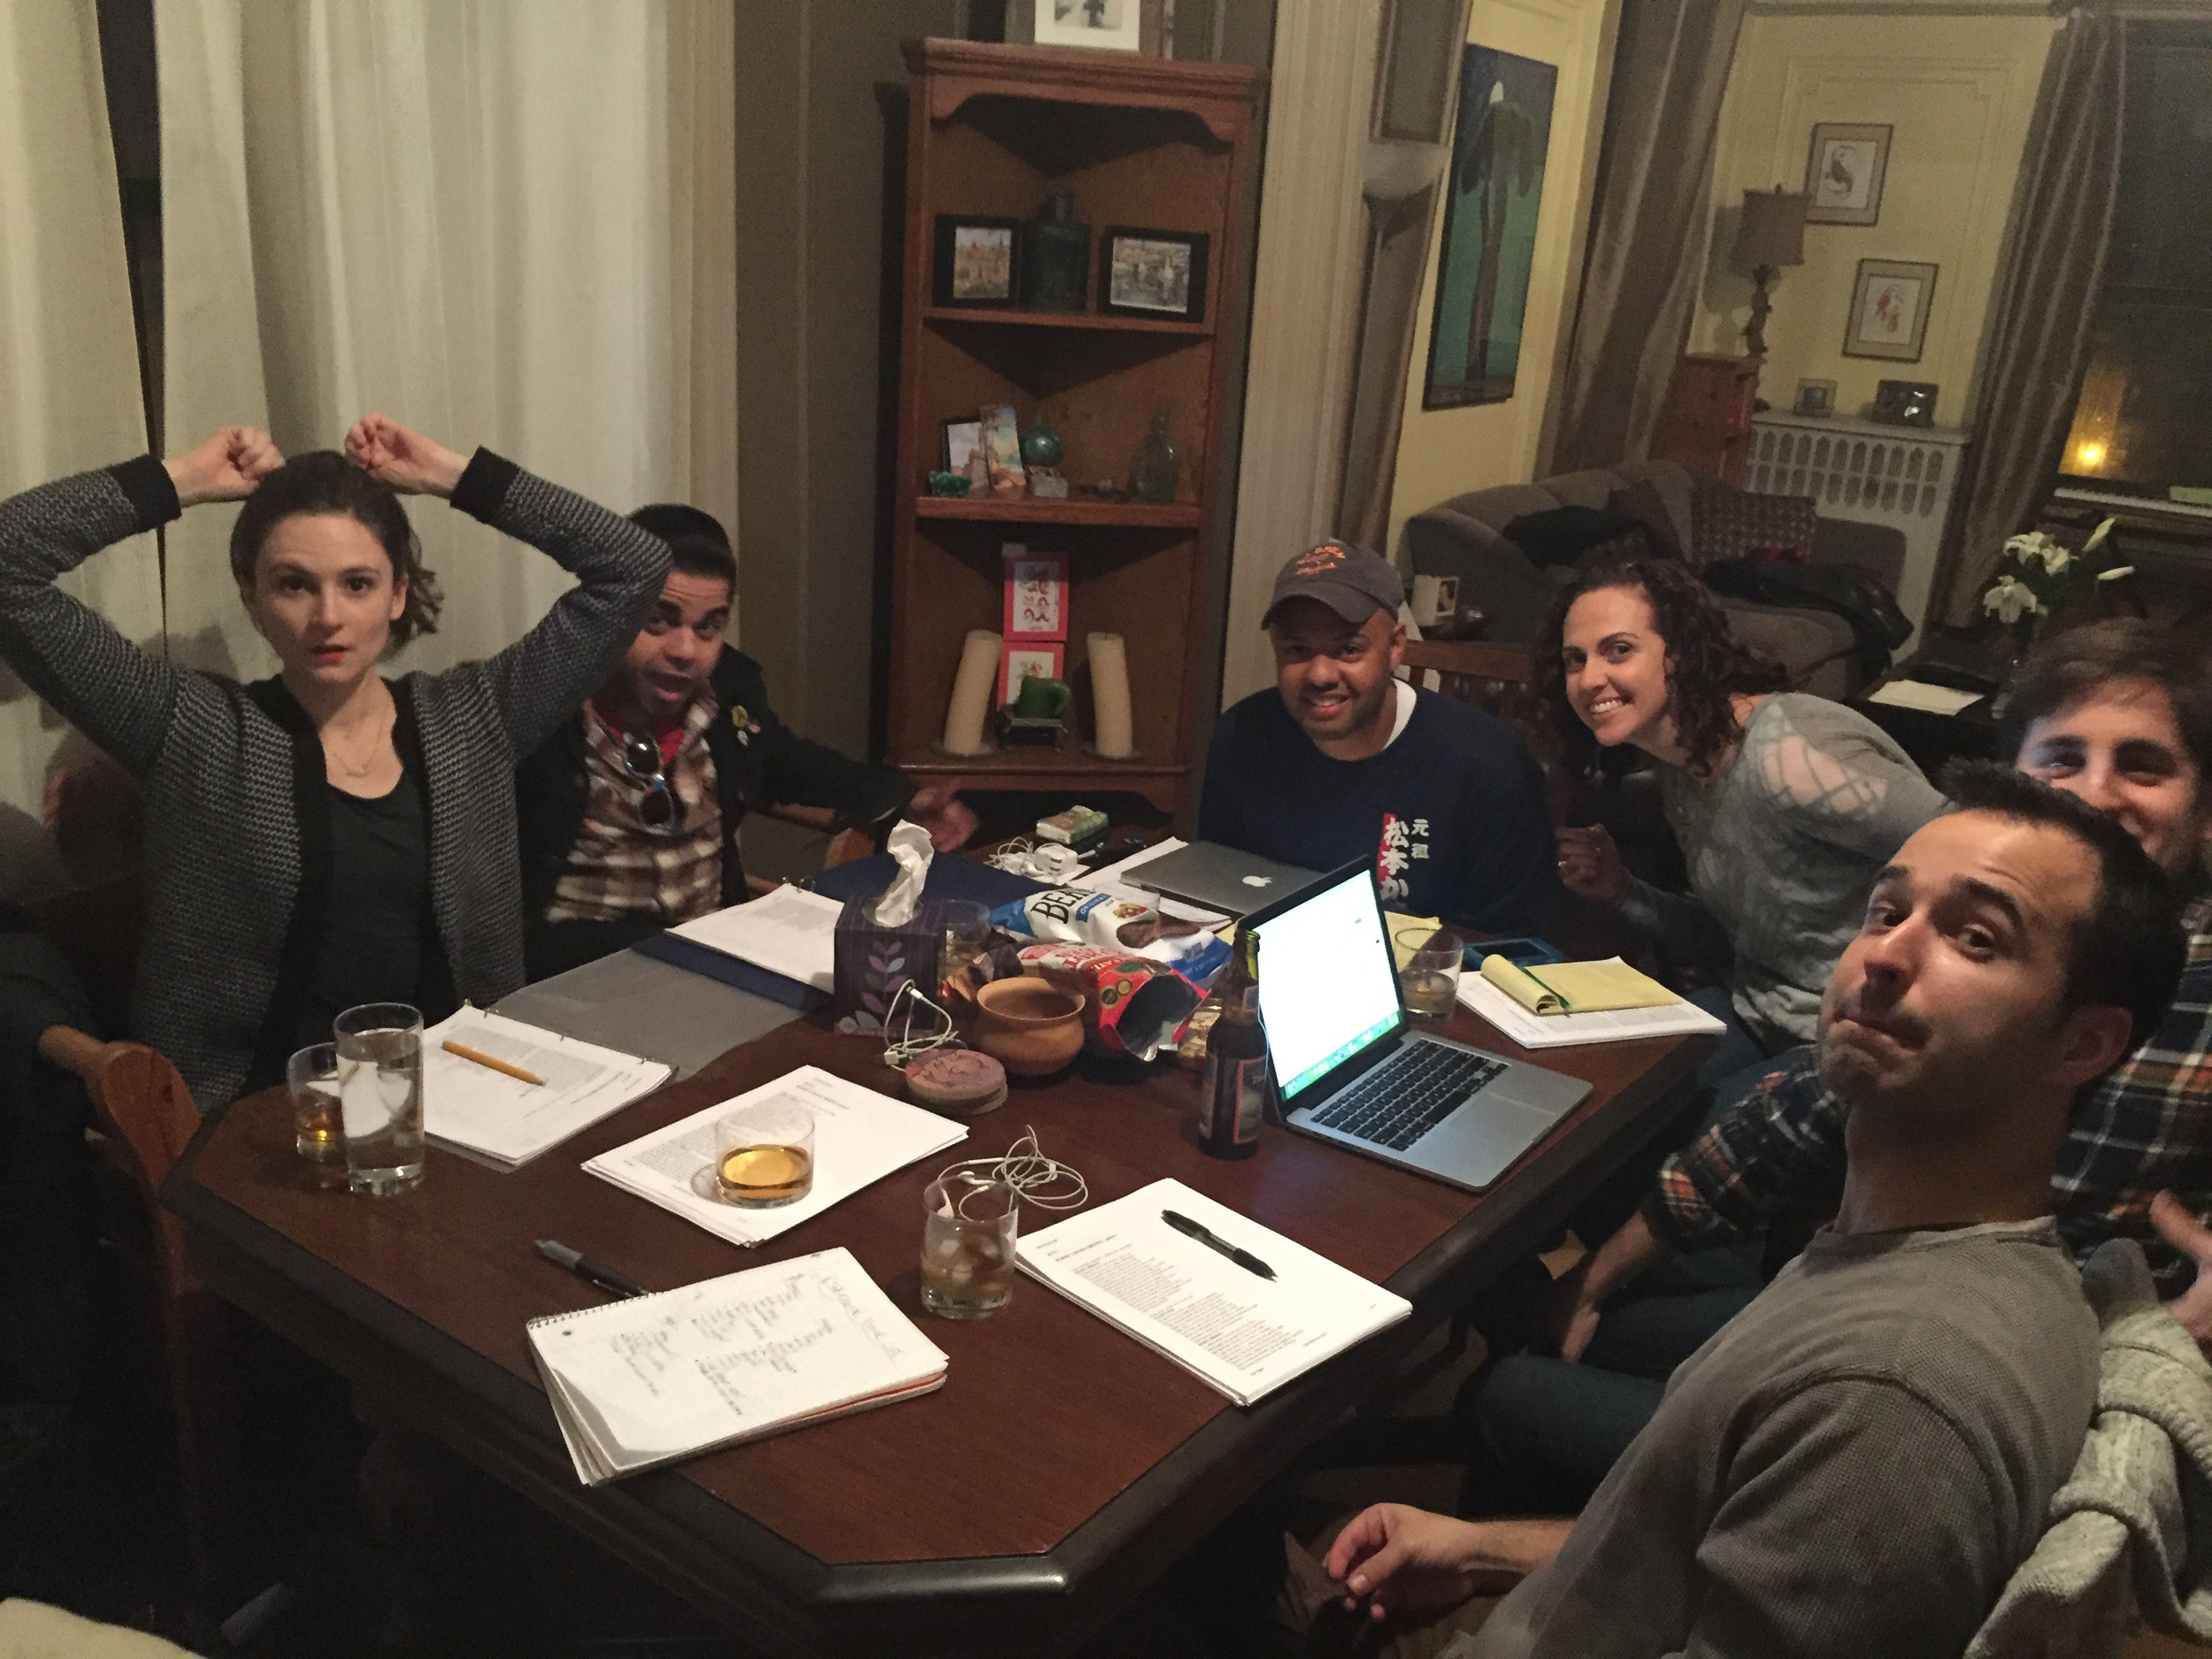 Early Table Read (of 12th Night) Around Our Dining Room Table